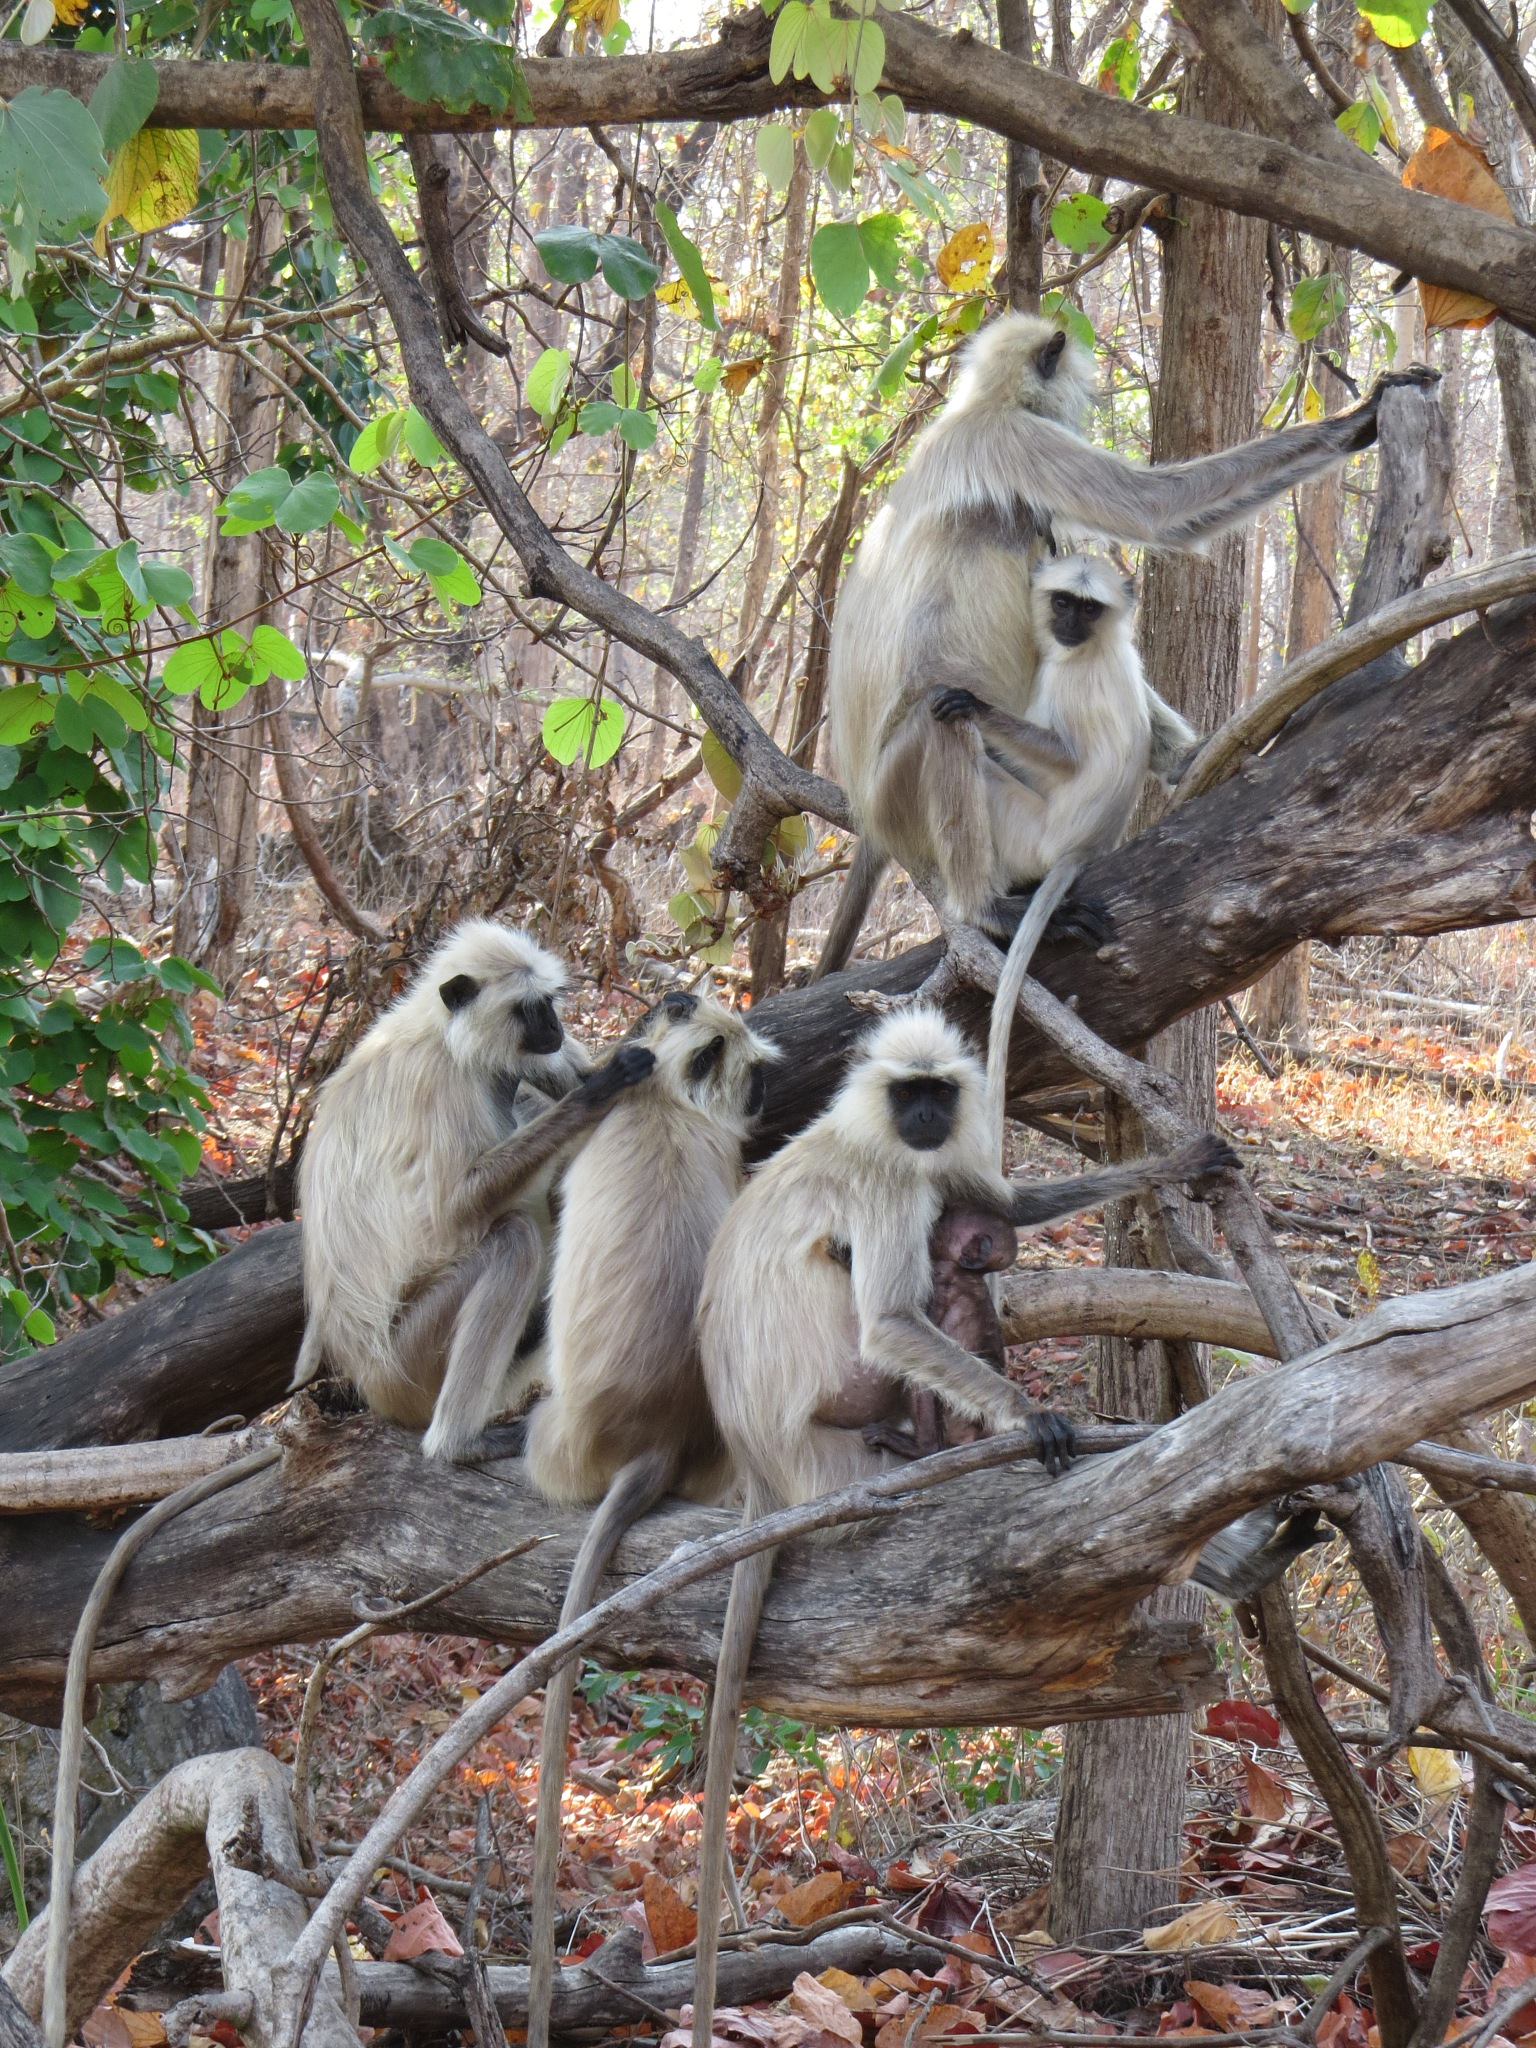 The primates by Jagdish Chandra